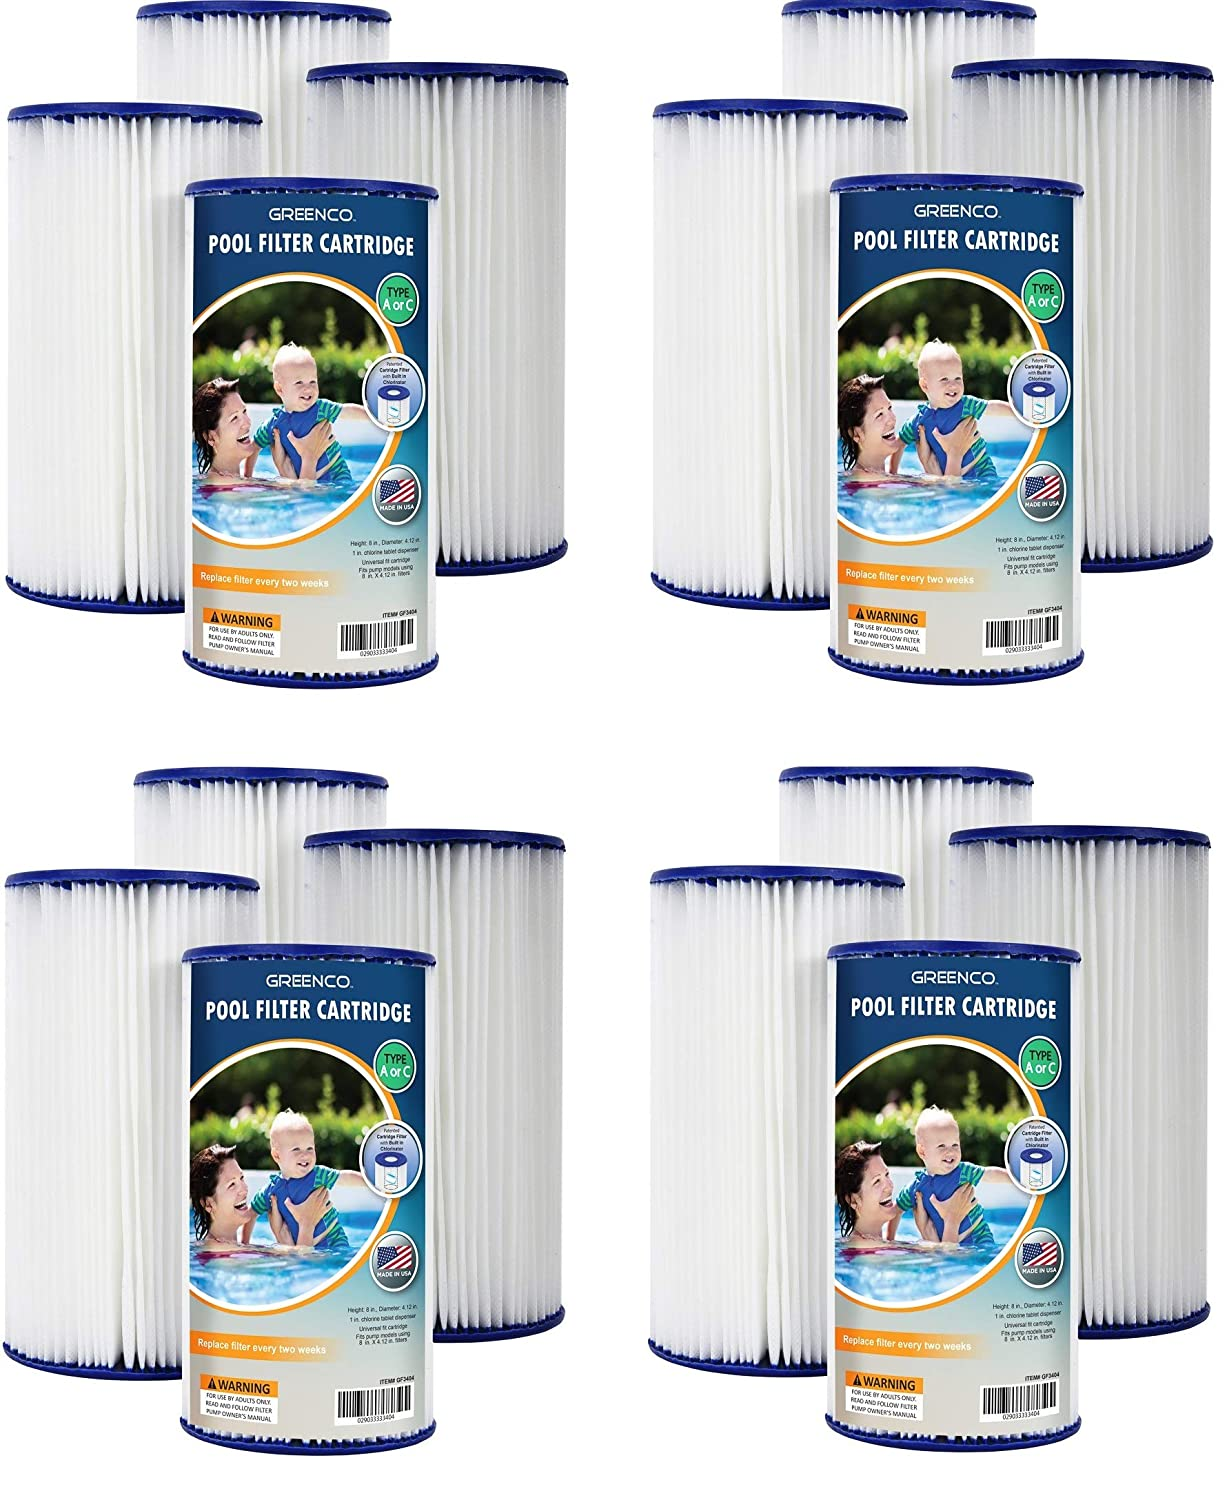 2 X Set of 4 Greenco Pool Filter Cartridges Type A or C ...